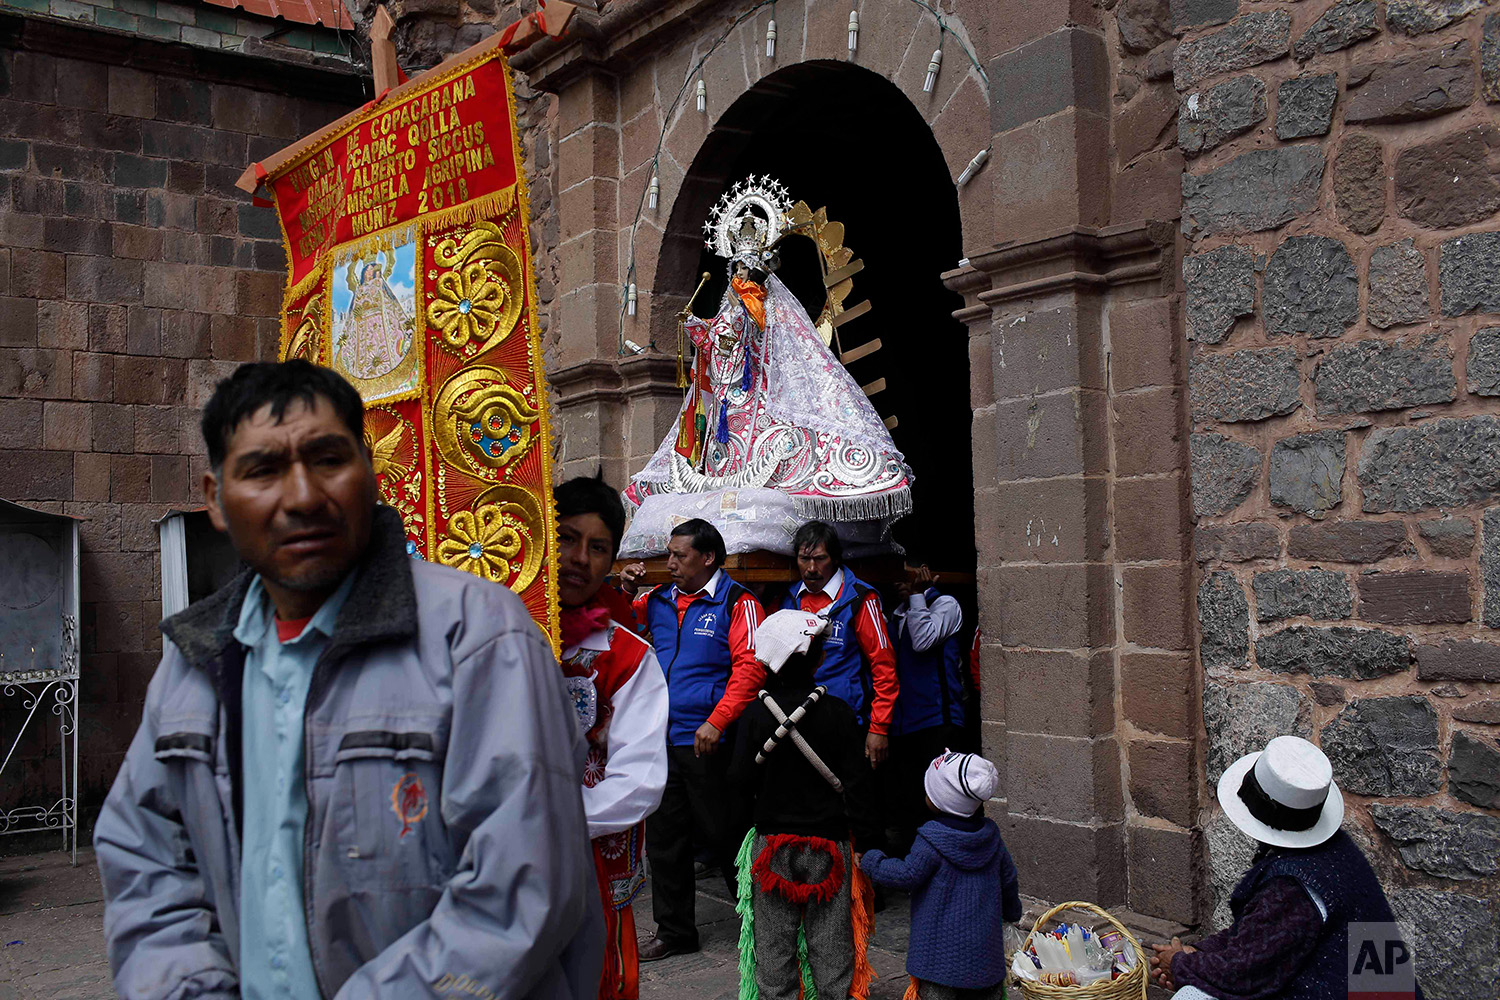 """""""Cargadores"""" or male carriers exit the Almudena Temple shouldering a statue of Our Lady of Copacabana, where a service was held in the virgin's honor, in Cuzco, Peru, Aug. 5, 2018. (AP Photo/Martin Mejia)"""